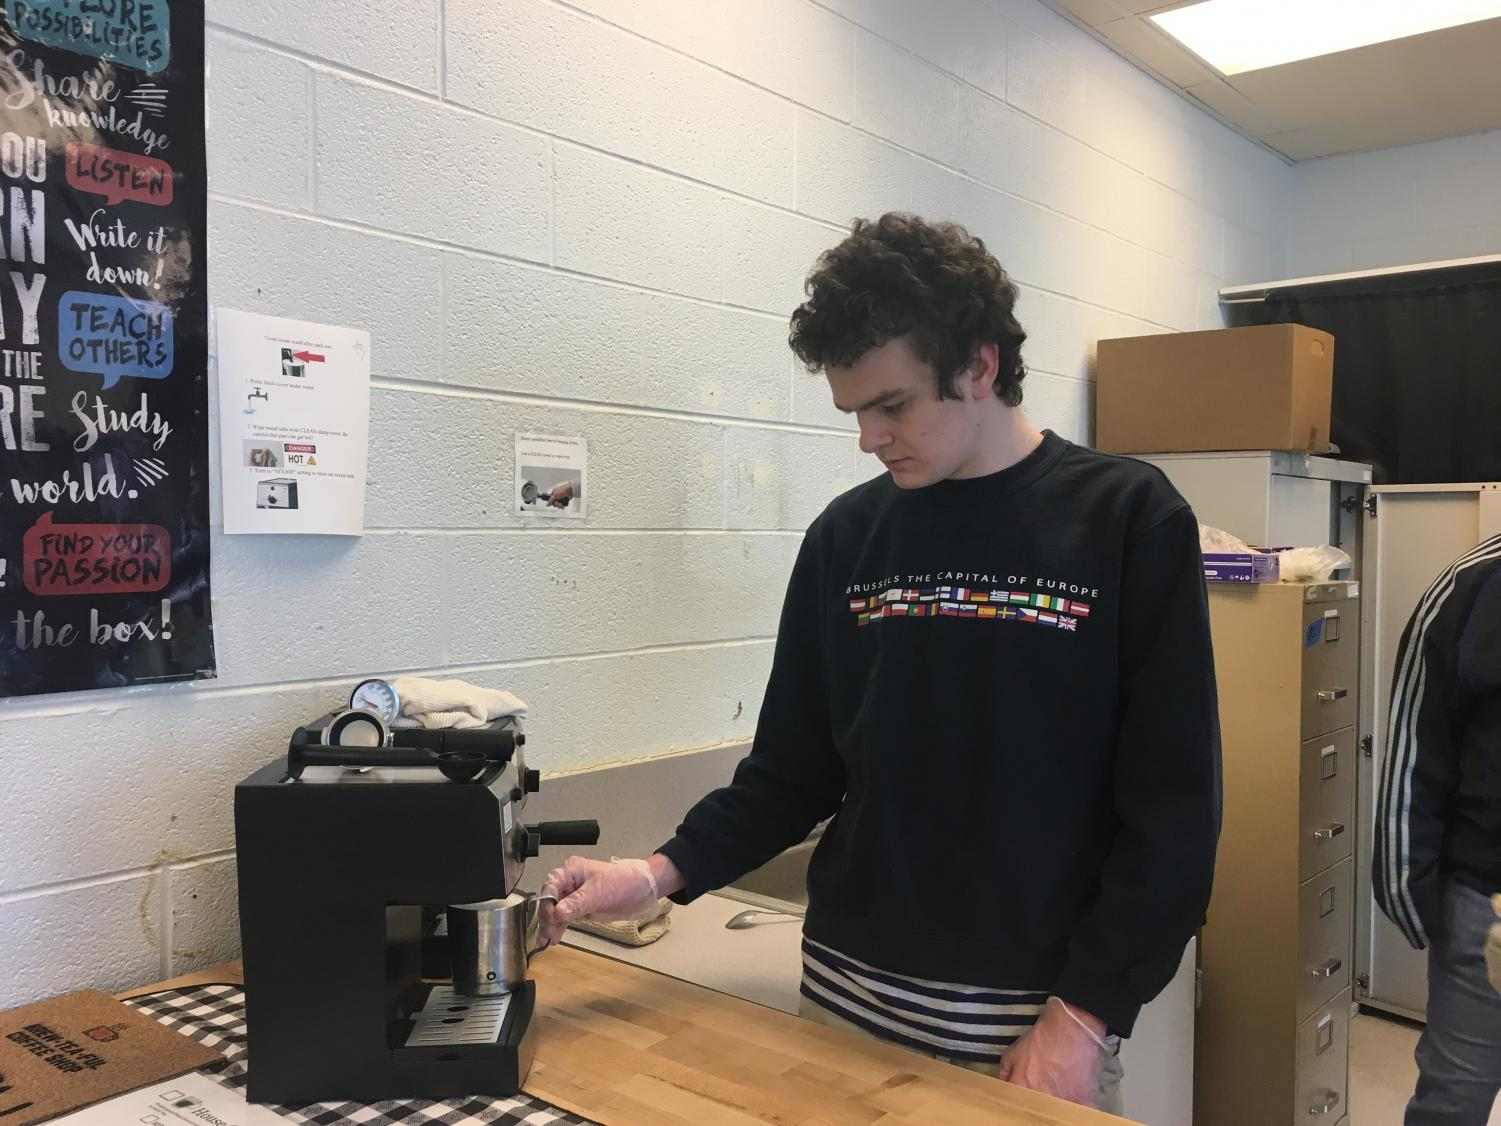 Collin Sproule, a Brew-Tea-Ful Coffee Shop employee, makes coffee for students during 7th period.